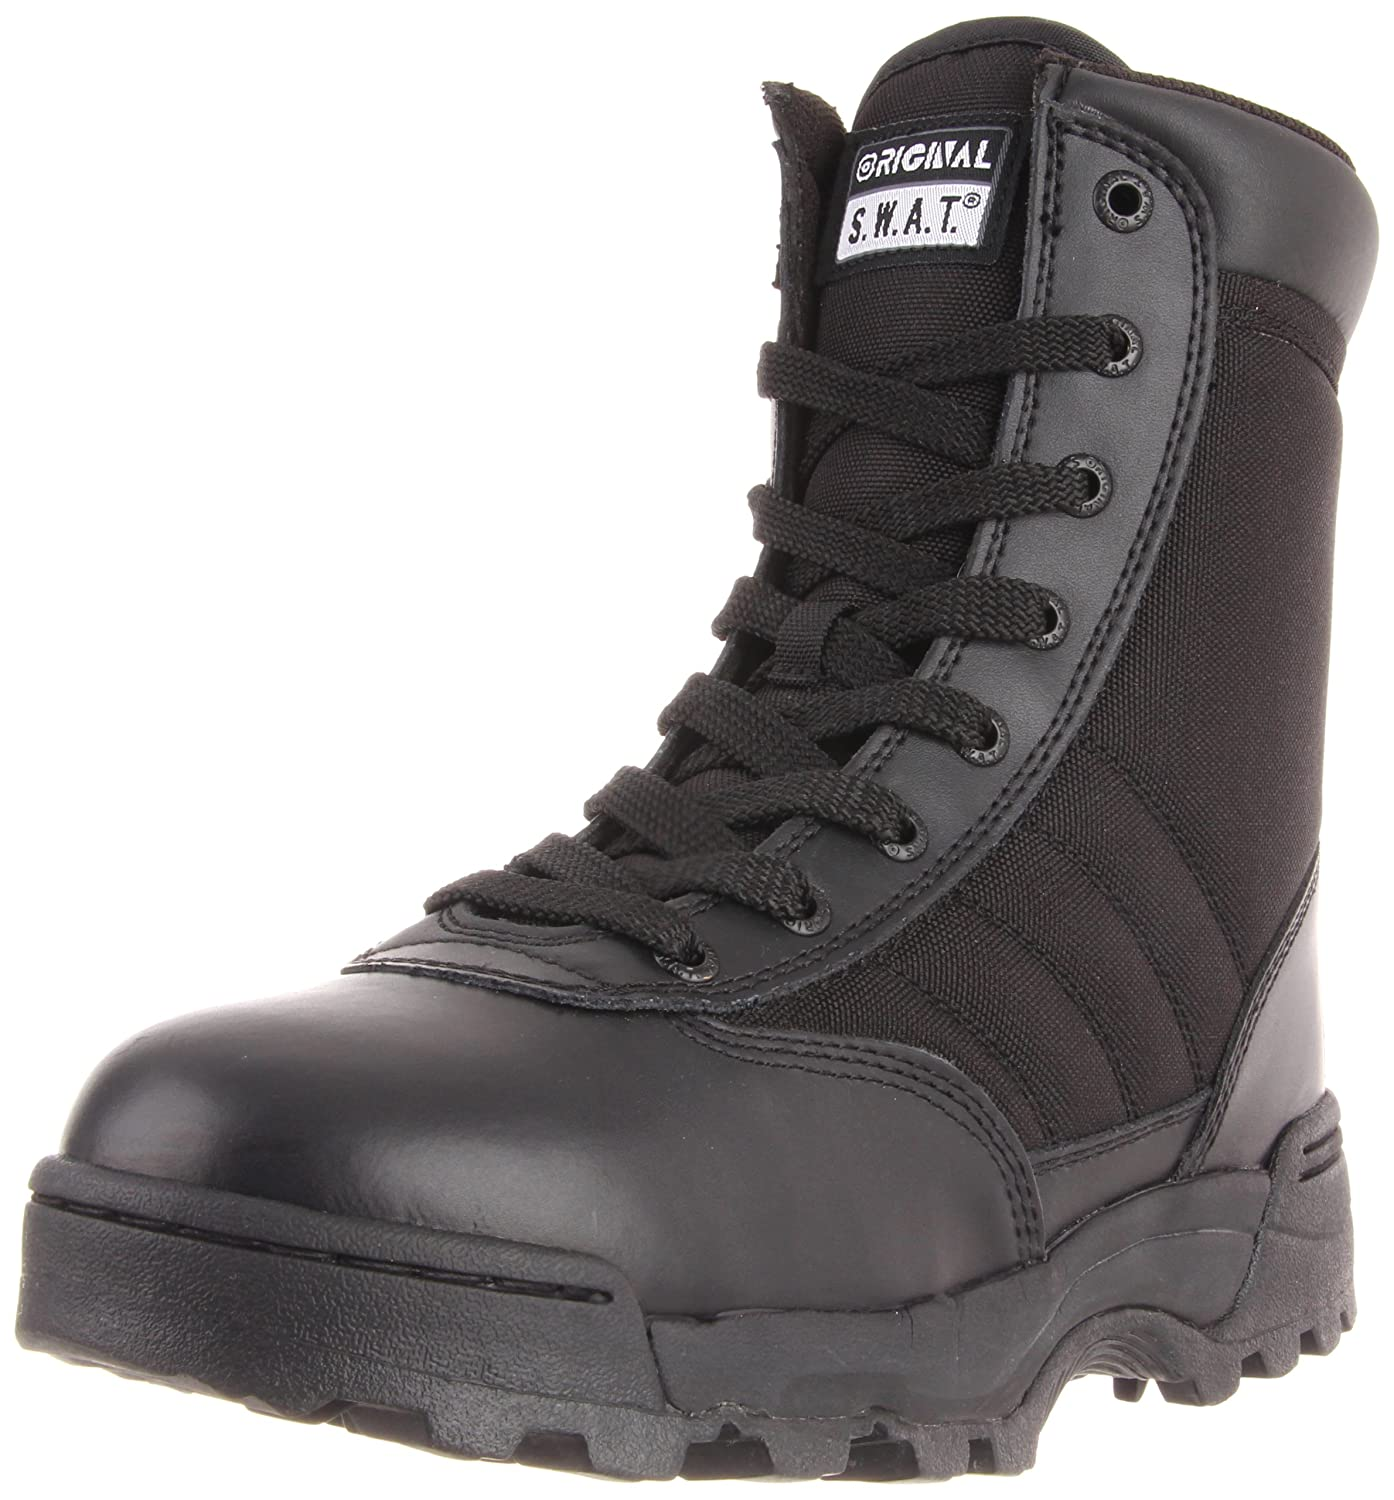 Original SWAT Einsatzstiefel 1152 Side Zip